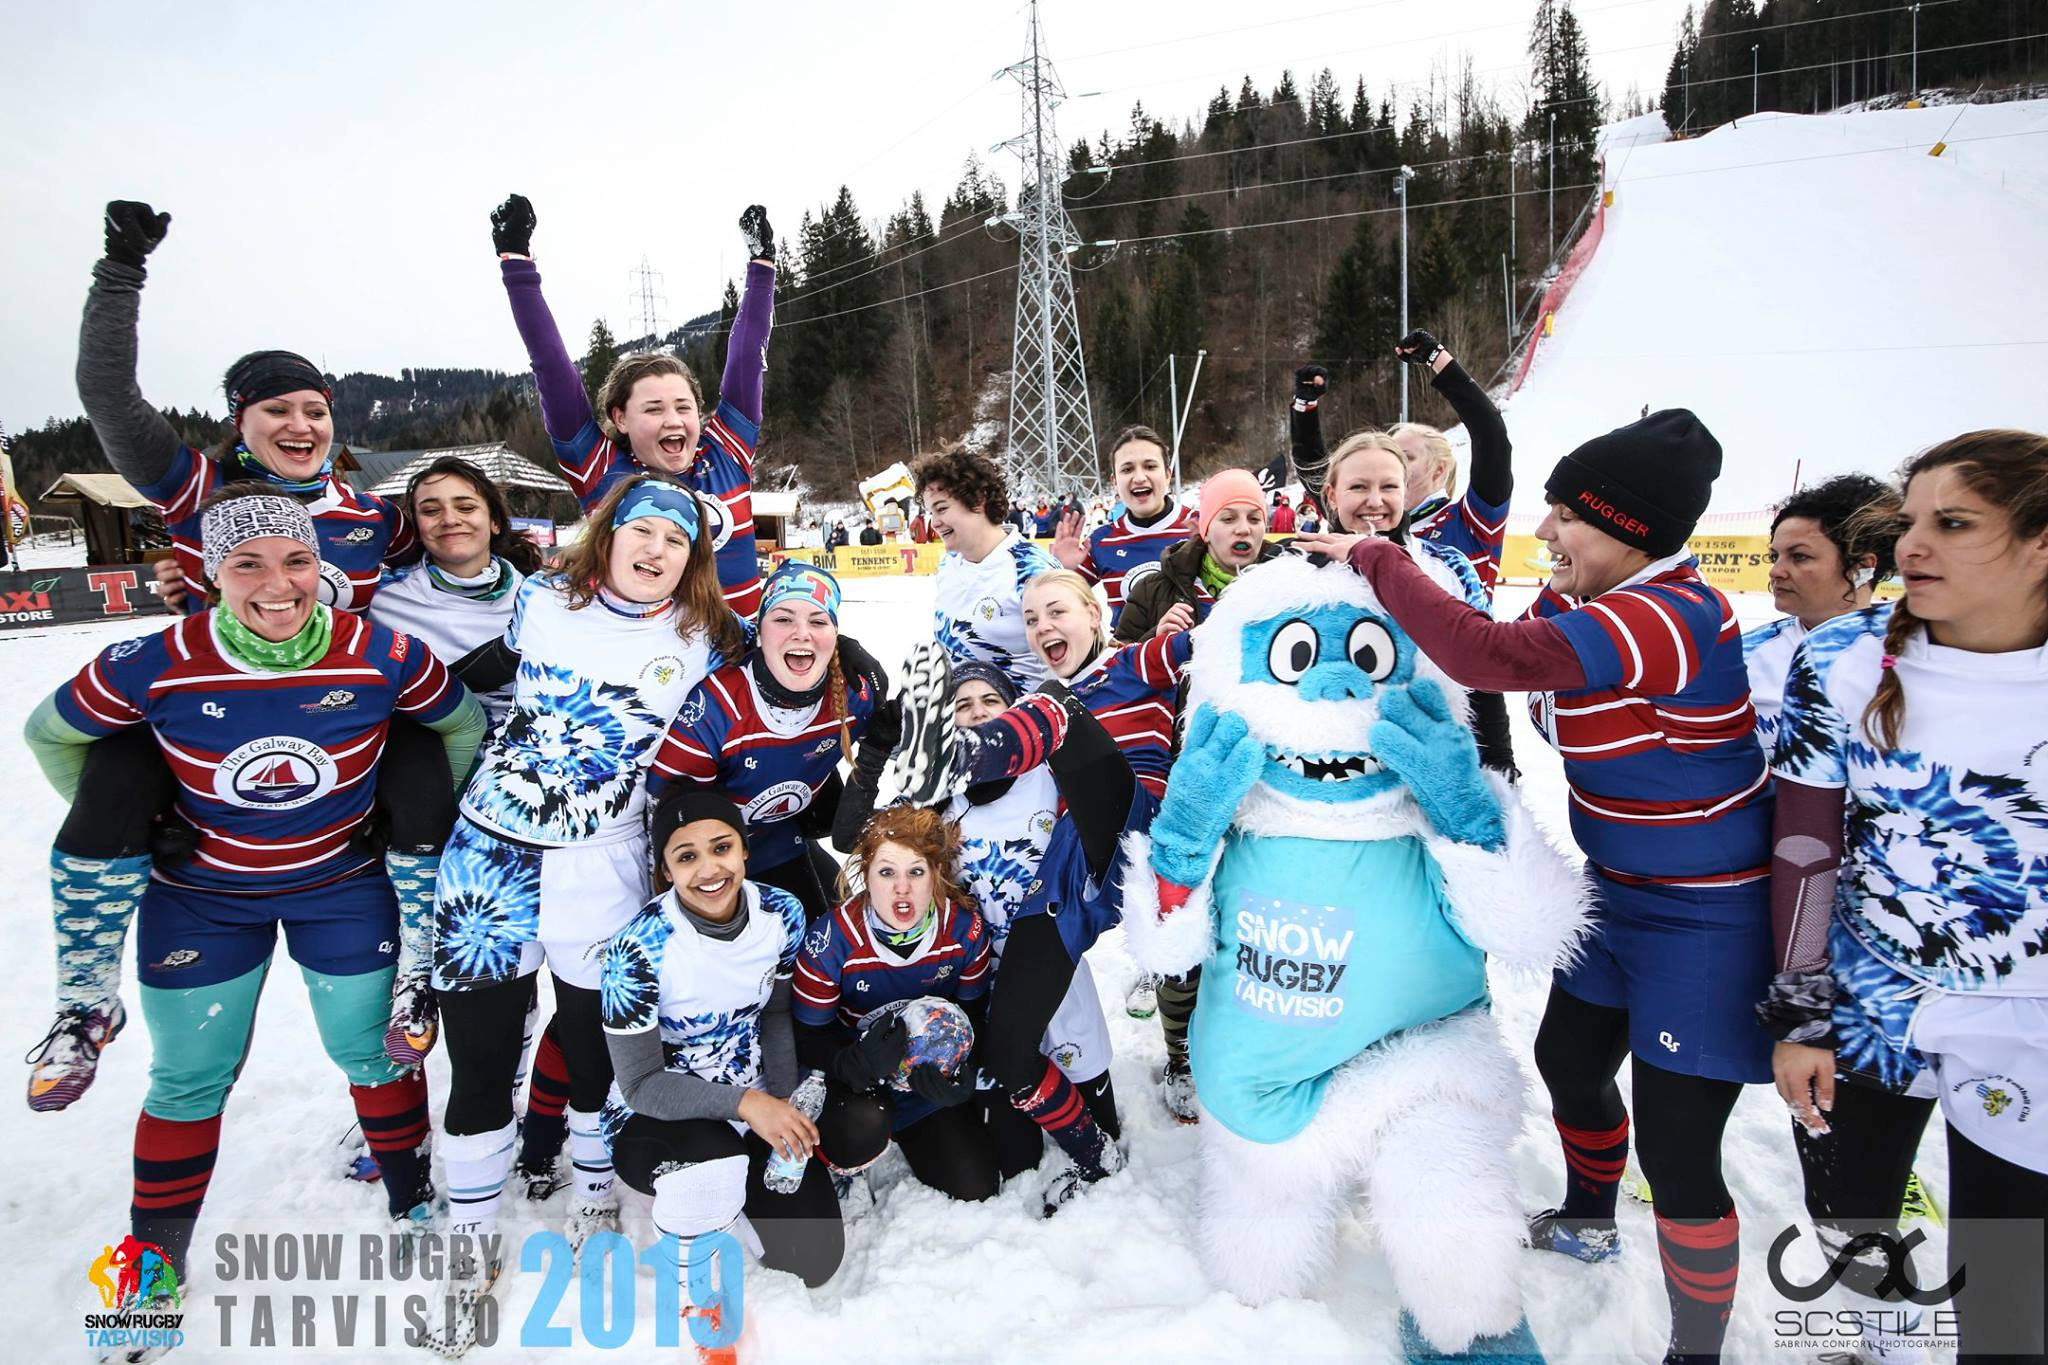 7tes Snow Rugby 5s Turnier Tarvisio 2019